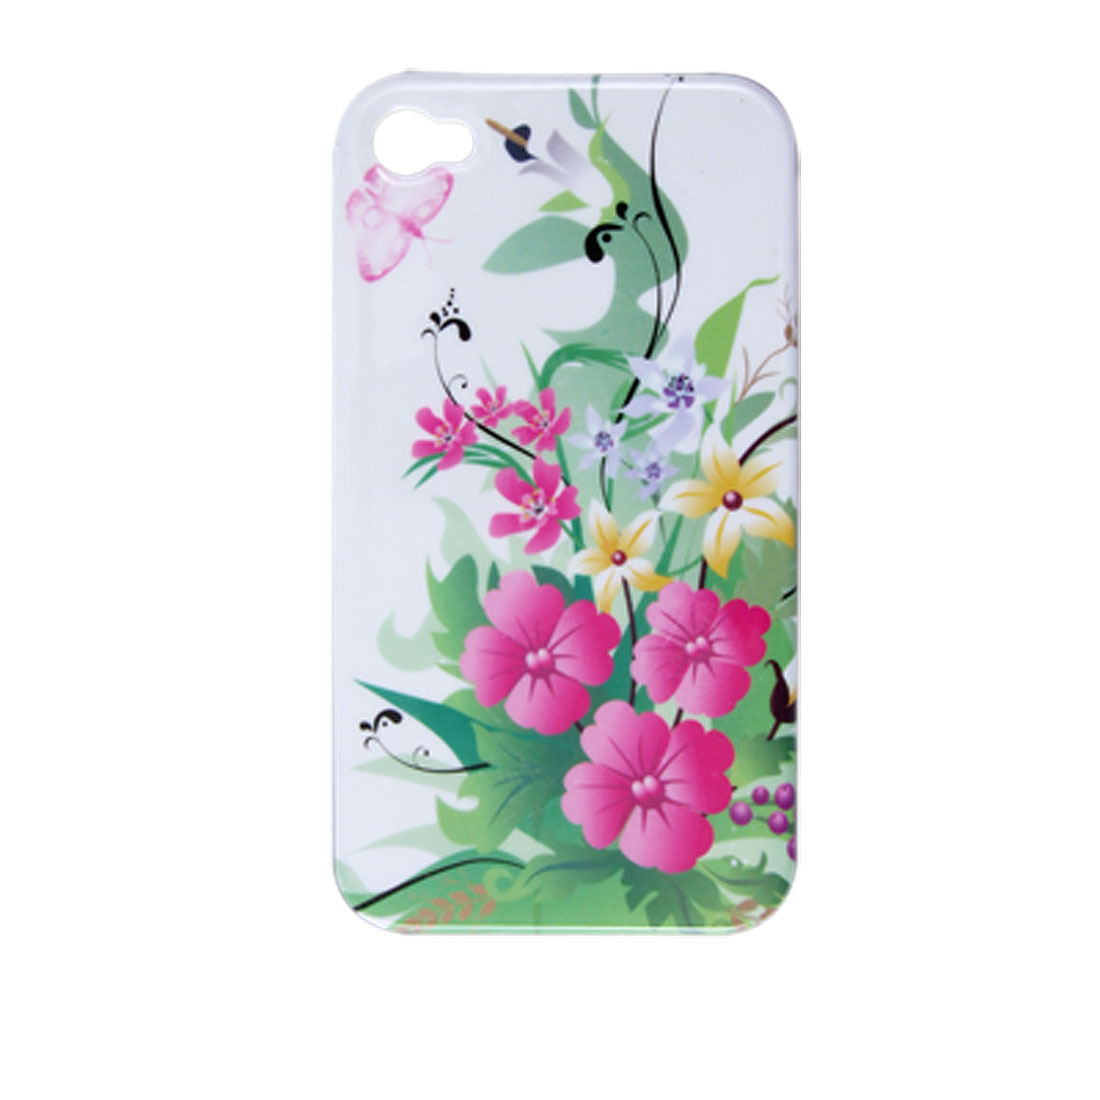 Colors Flower Plant Hard Plastic Back Case for iPhone 4 4G